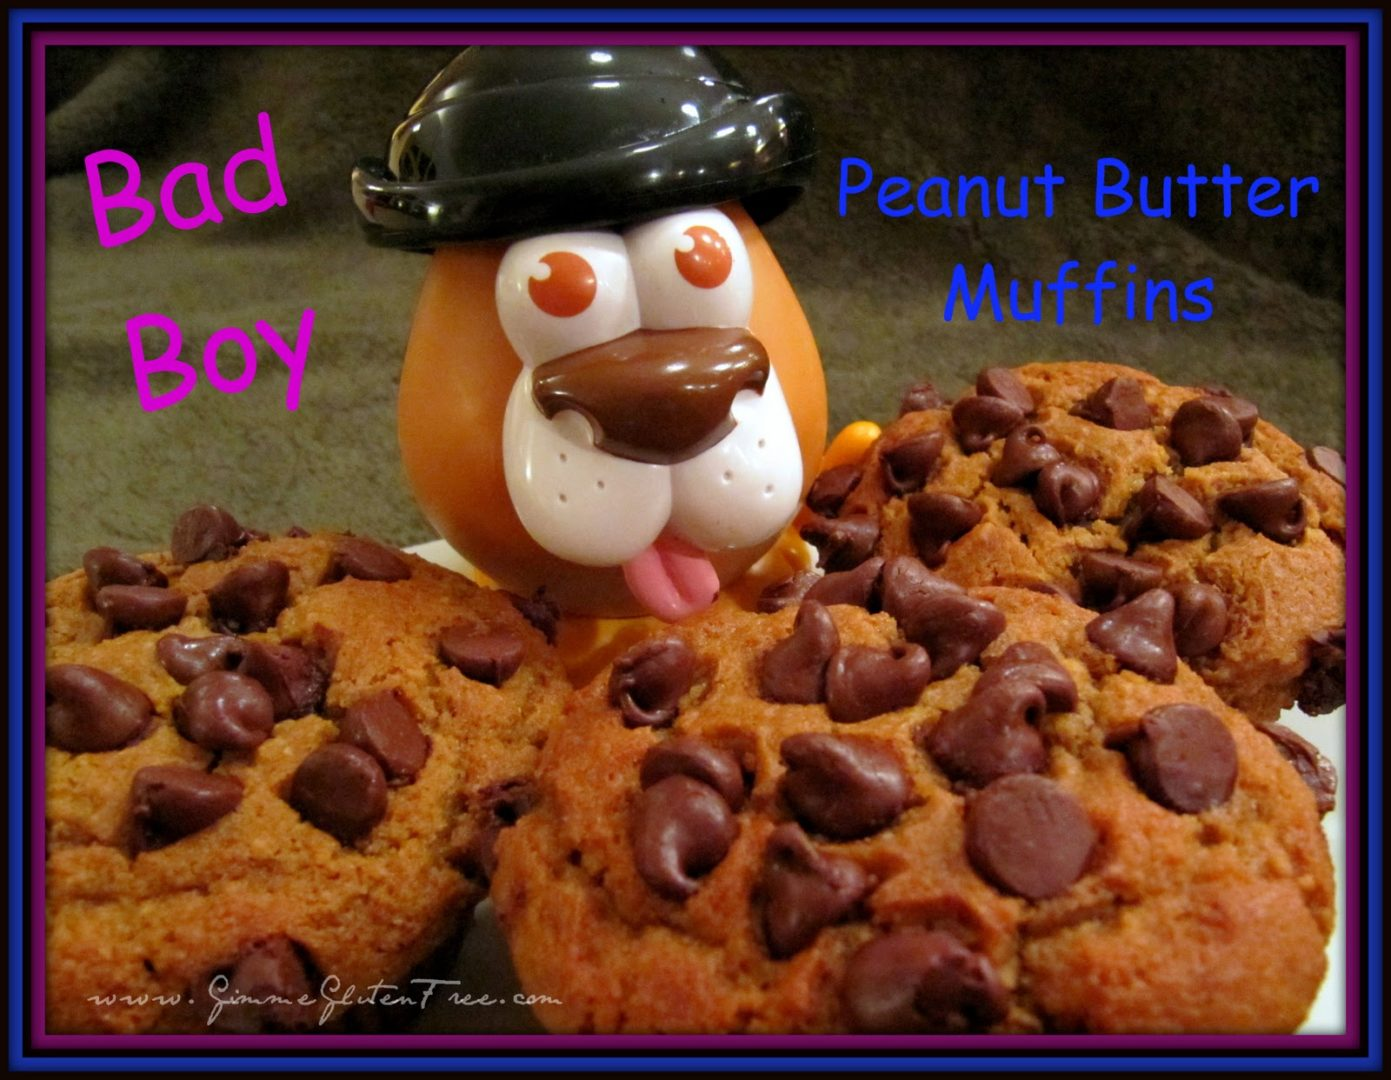 Quot Bad Boy Quot Peanut Butter Chocolate Chip Muffins Ruby Lynn